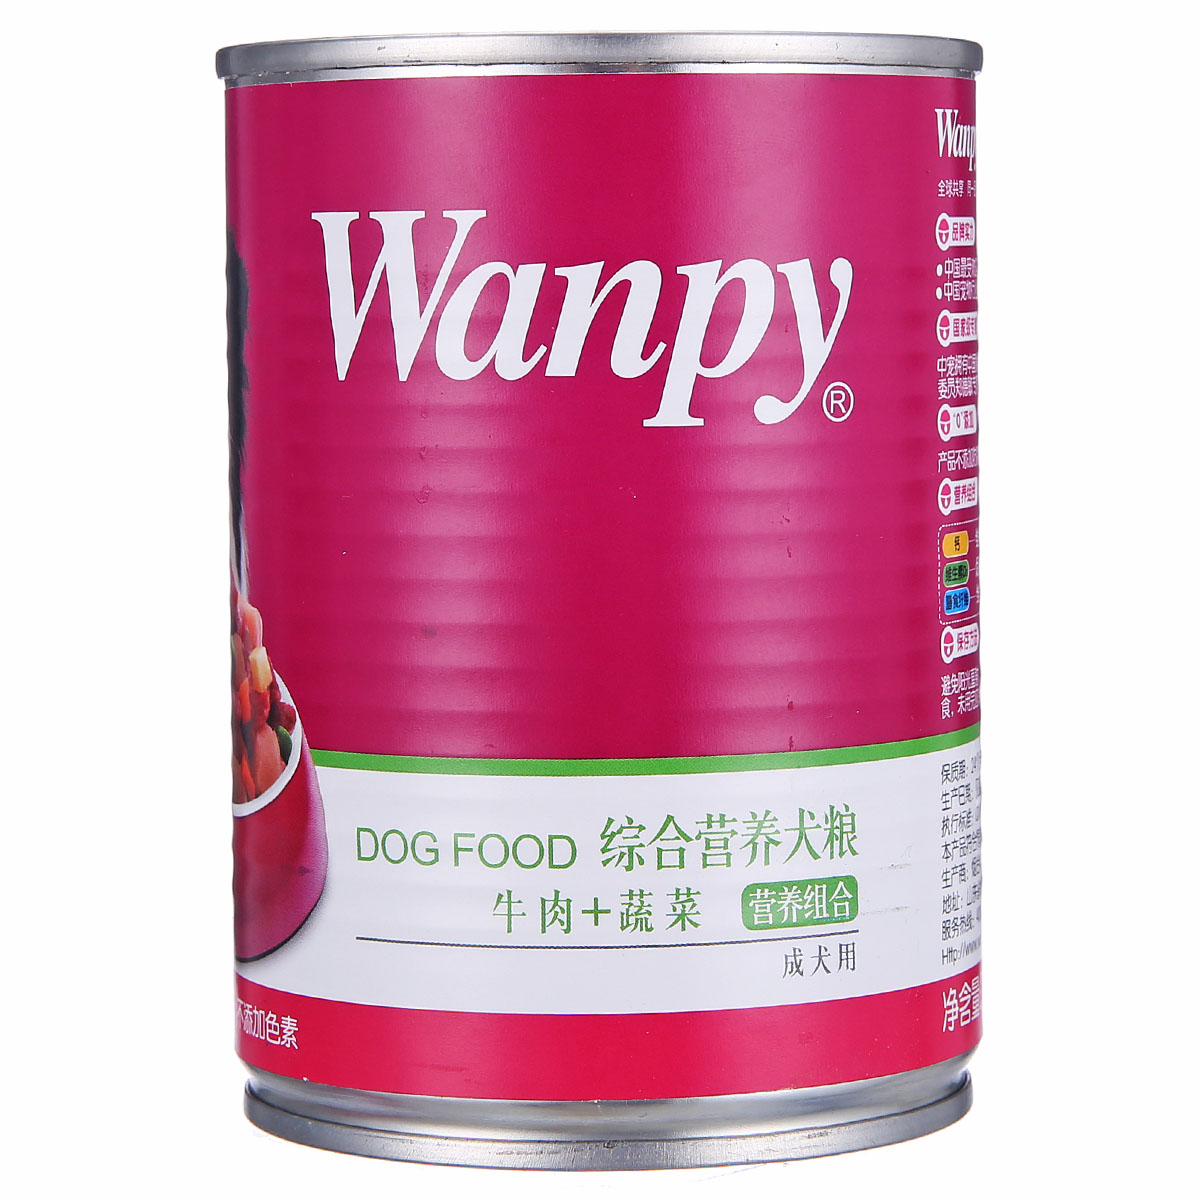 375g wanpy naughty dog canned vegetable beef dog canned dog snacks dog wet dog food pet snacks soft food